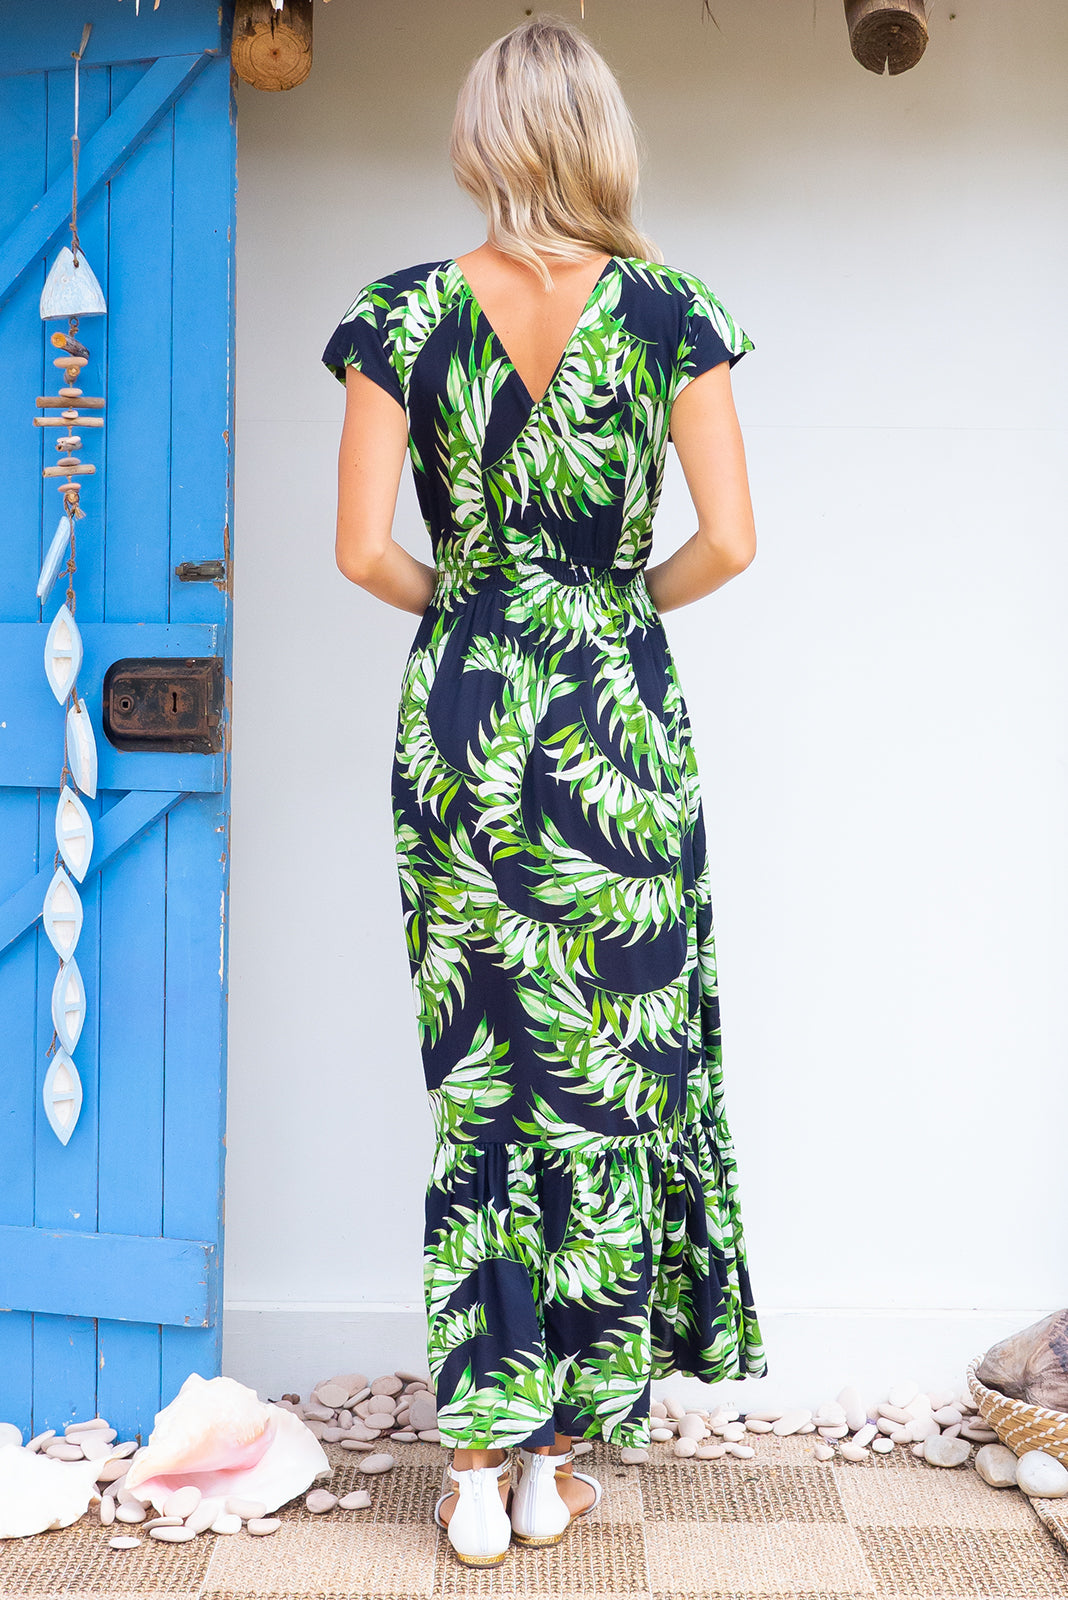 Nellie Palms Maxi Dress Maxi dress features elasticated empire line with a cap sleeve and deep v neck the fabric is a soft woven rayon in a bright navy based floral print